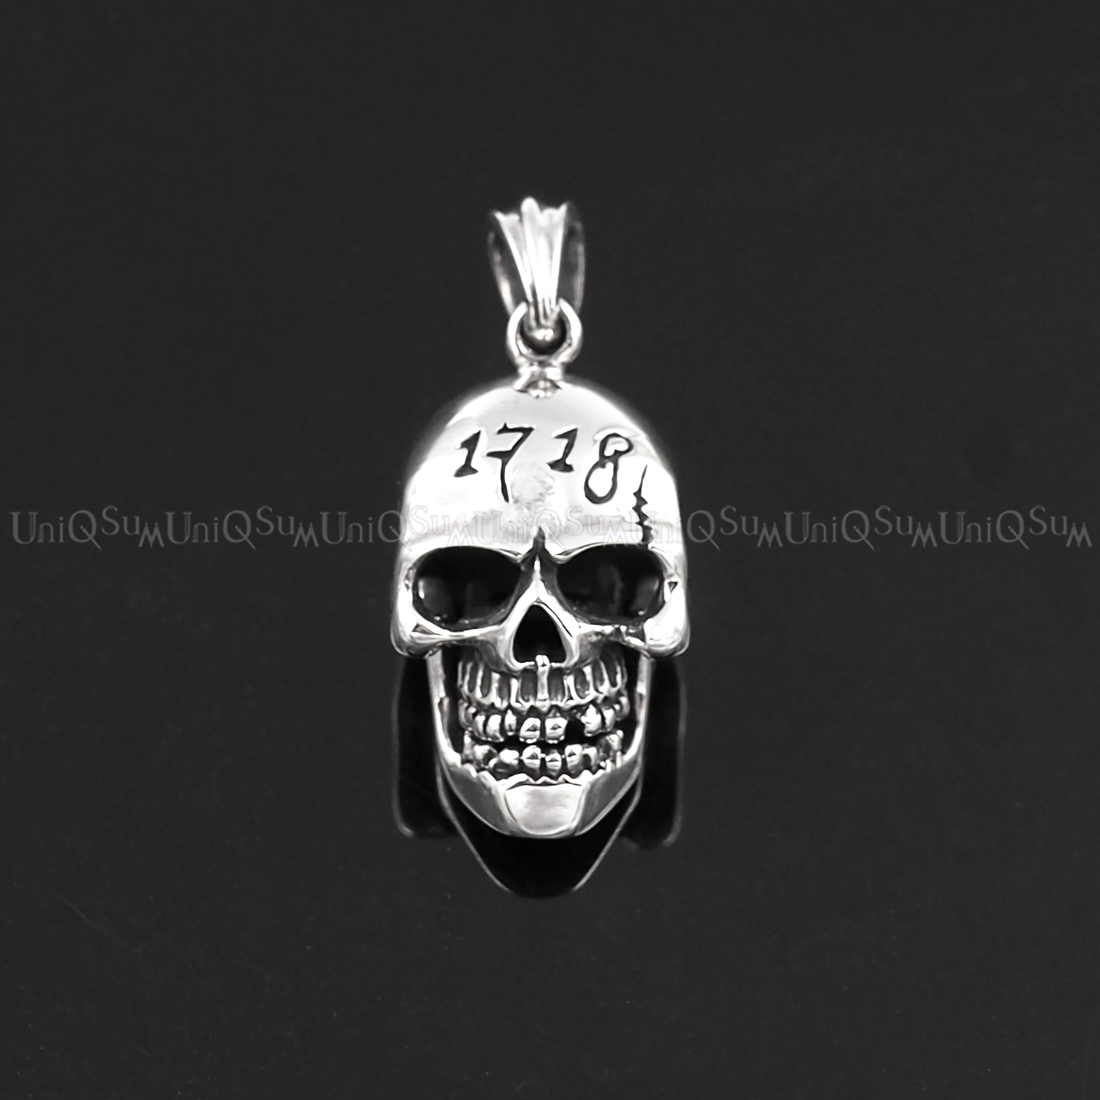 Sterling Silver Skull Pendants Movable mouth 925 sterling silver skull pendant uniqsum skull pendant movable mouth creepy skull silver pendant 925 sterling silver charms biker jewelry audiocablefo